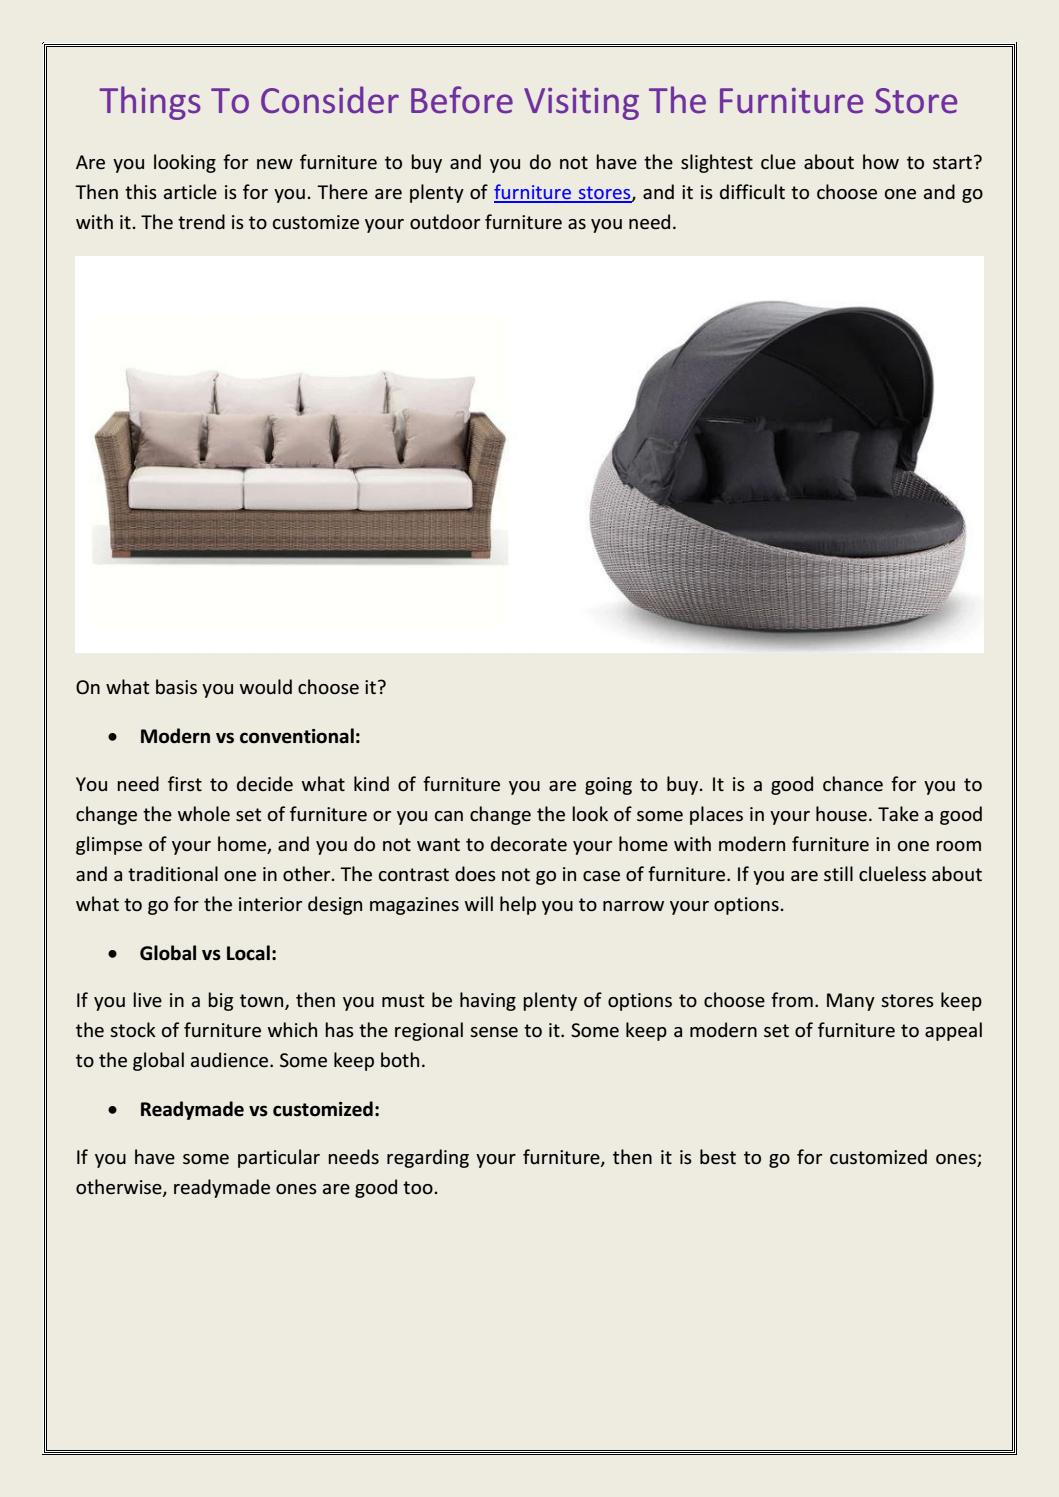 Things To Consider Before Visiting The Furniture Store By United House Furniture Issuu